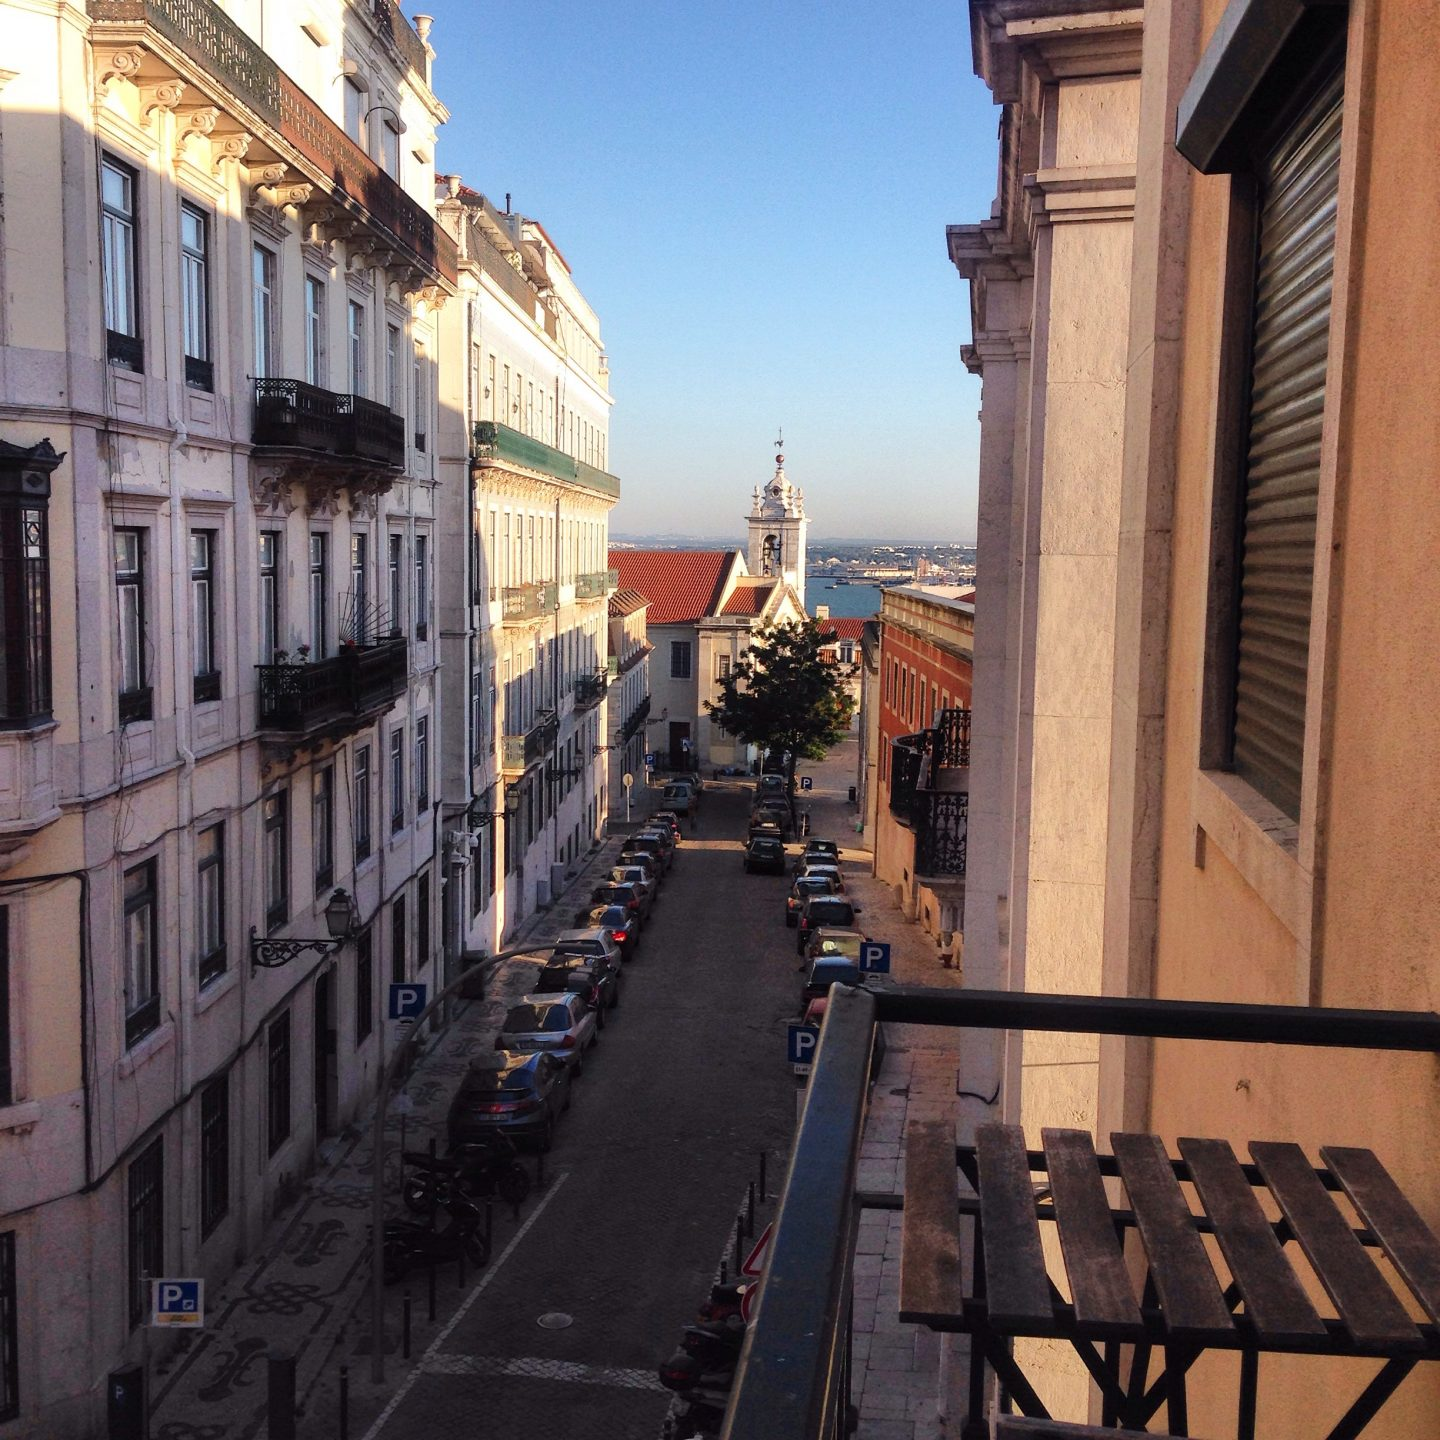 48 hours in Lisbon: Sun & Seafood in the City